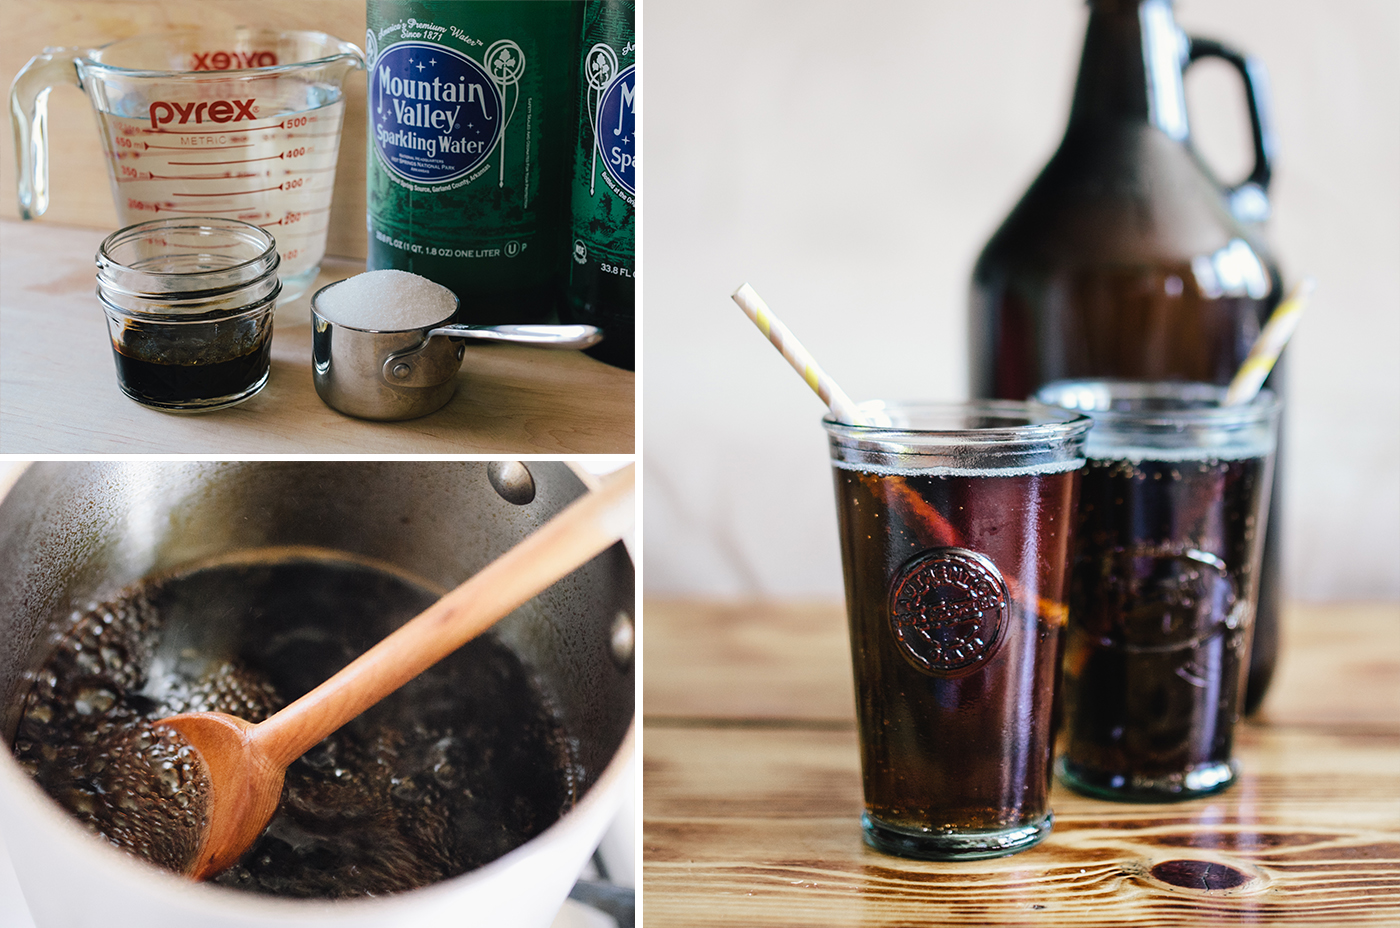 root beer, drinks, quick, cooking, home, monicapotter, monica potter, monica potter home